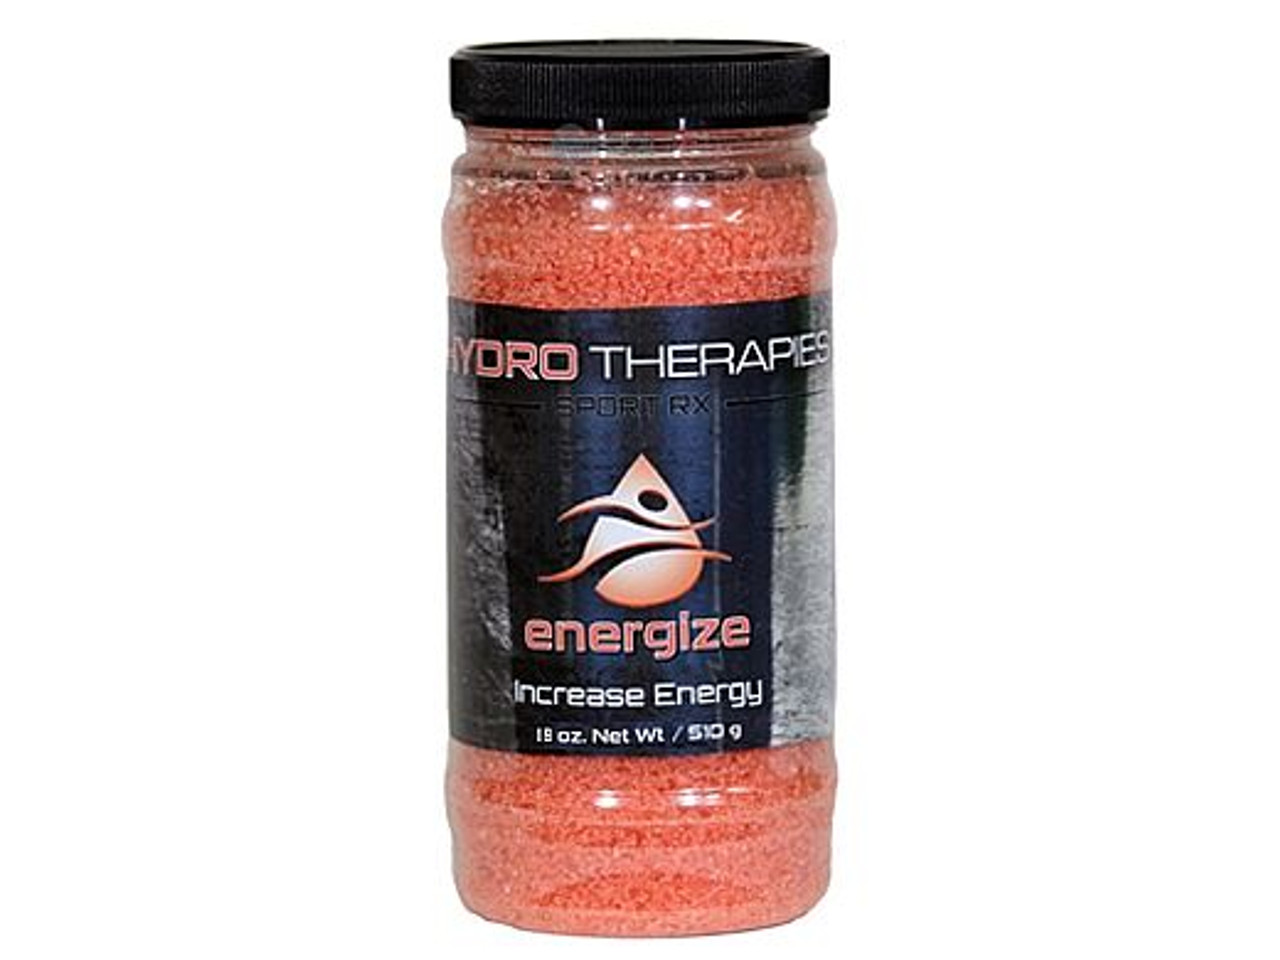 Master Spa - Hydro Therapies Sport Rx Energize Clary Sage & Ginger